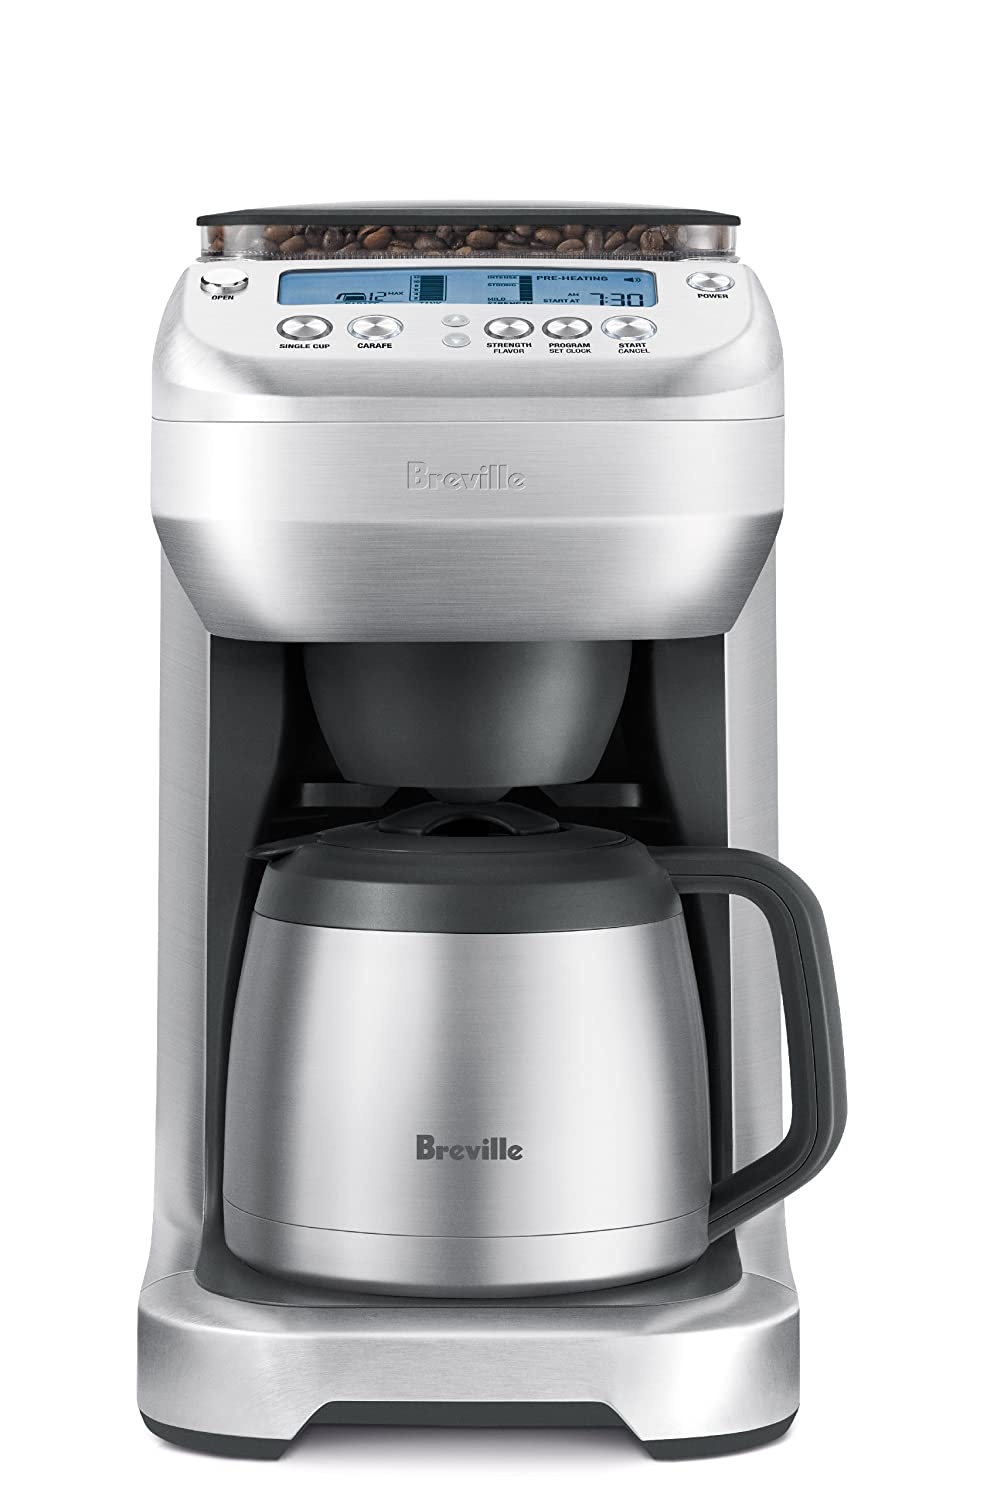 Breville Bdc600xl Youbrew Drip Coffee Maker Review Best